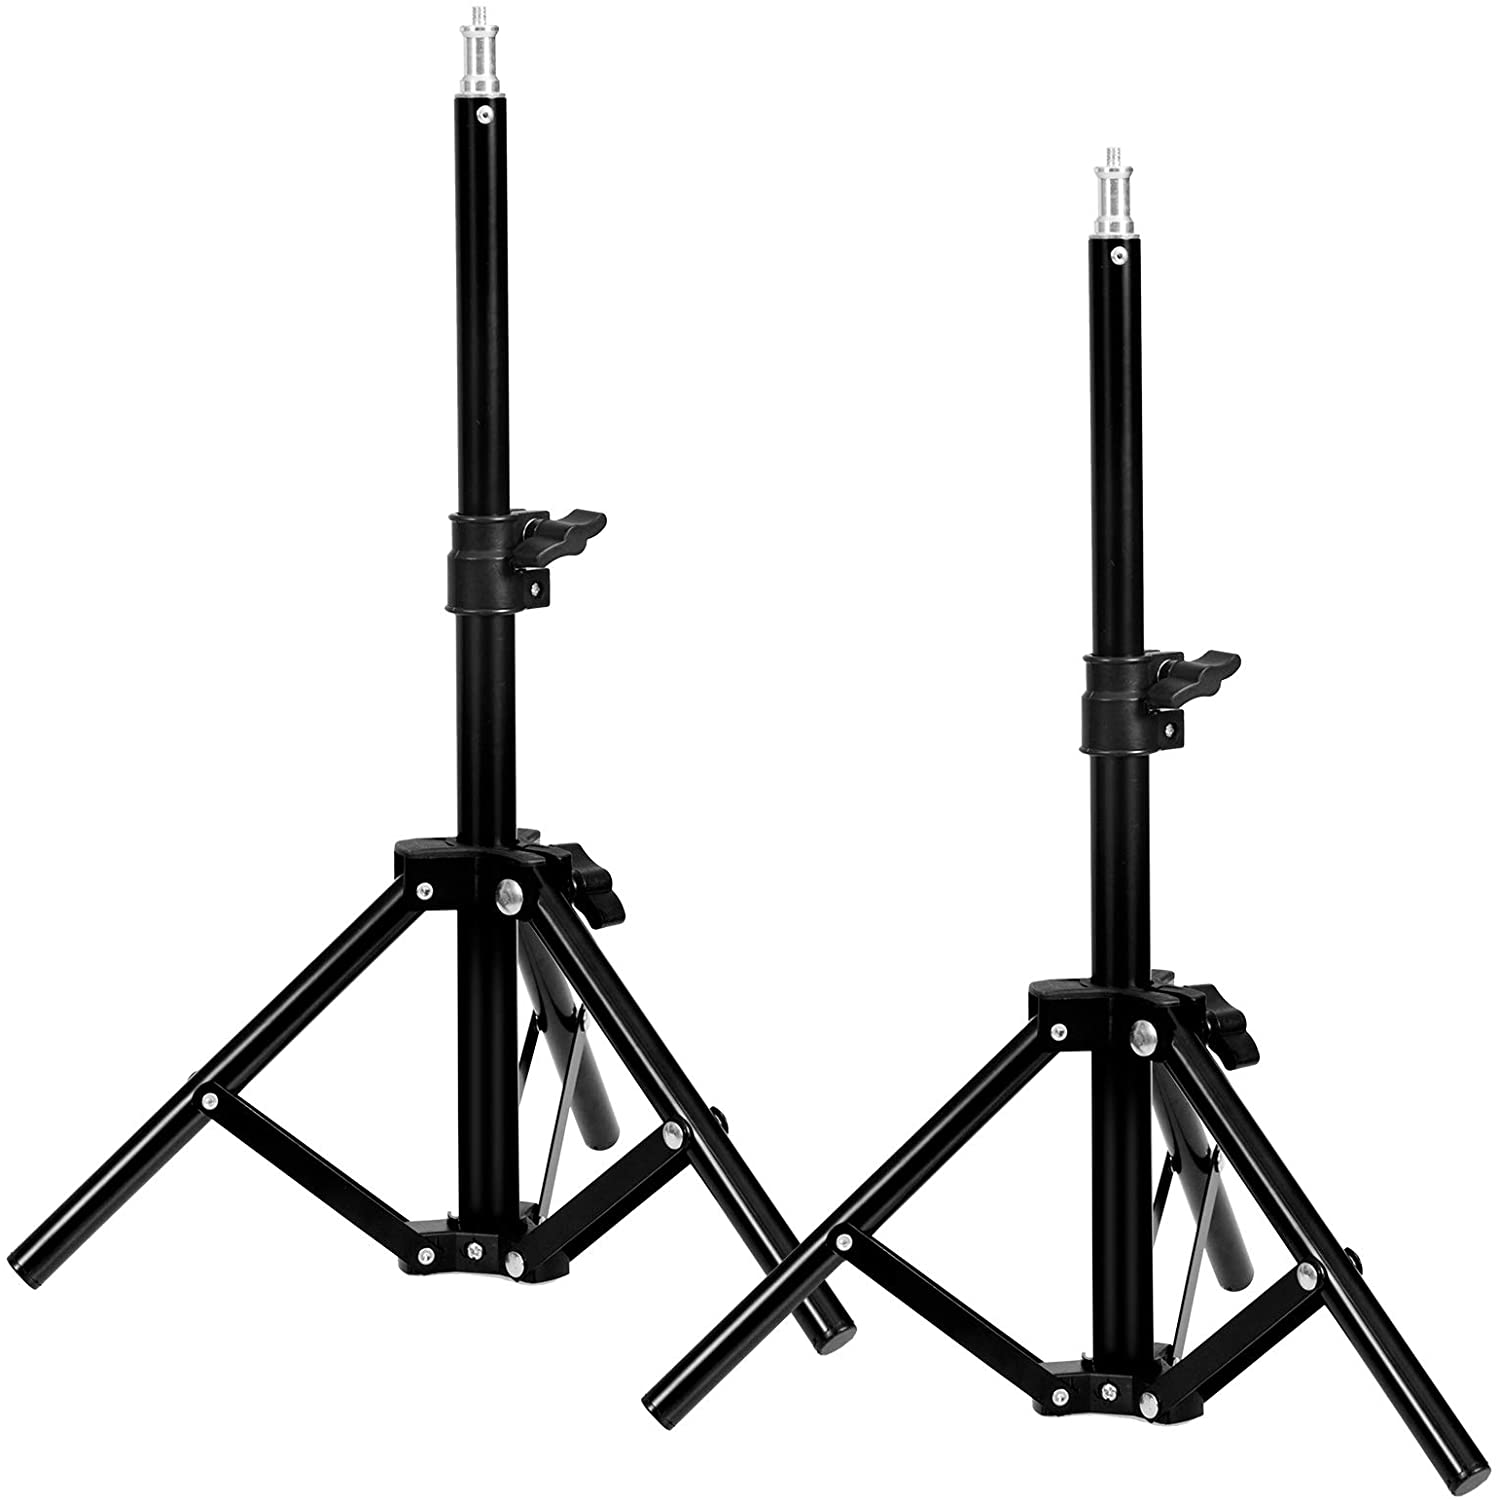 Selens Table Top Light Stand Photography 27.5Inch/70 cm Mini Tripod for Ring Light Speedlight Camera Dolly Video Recording Photo Studio Lighting,2 Pack